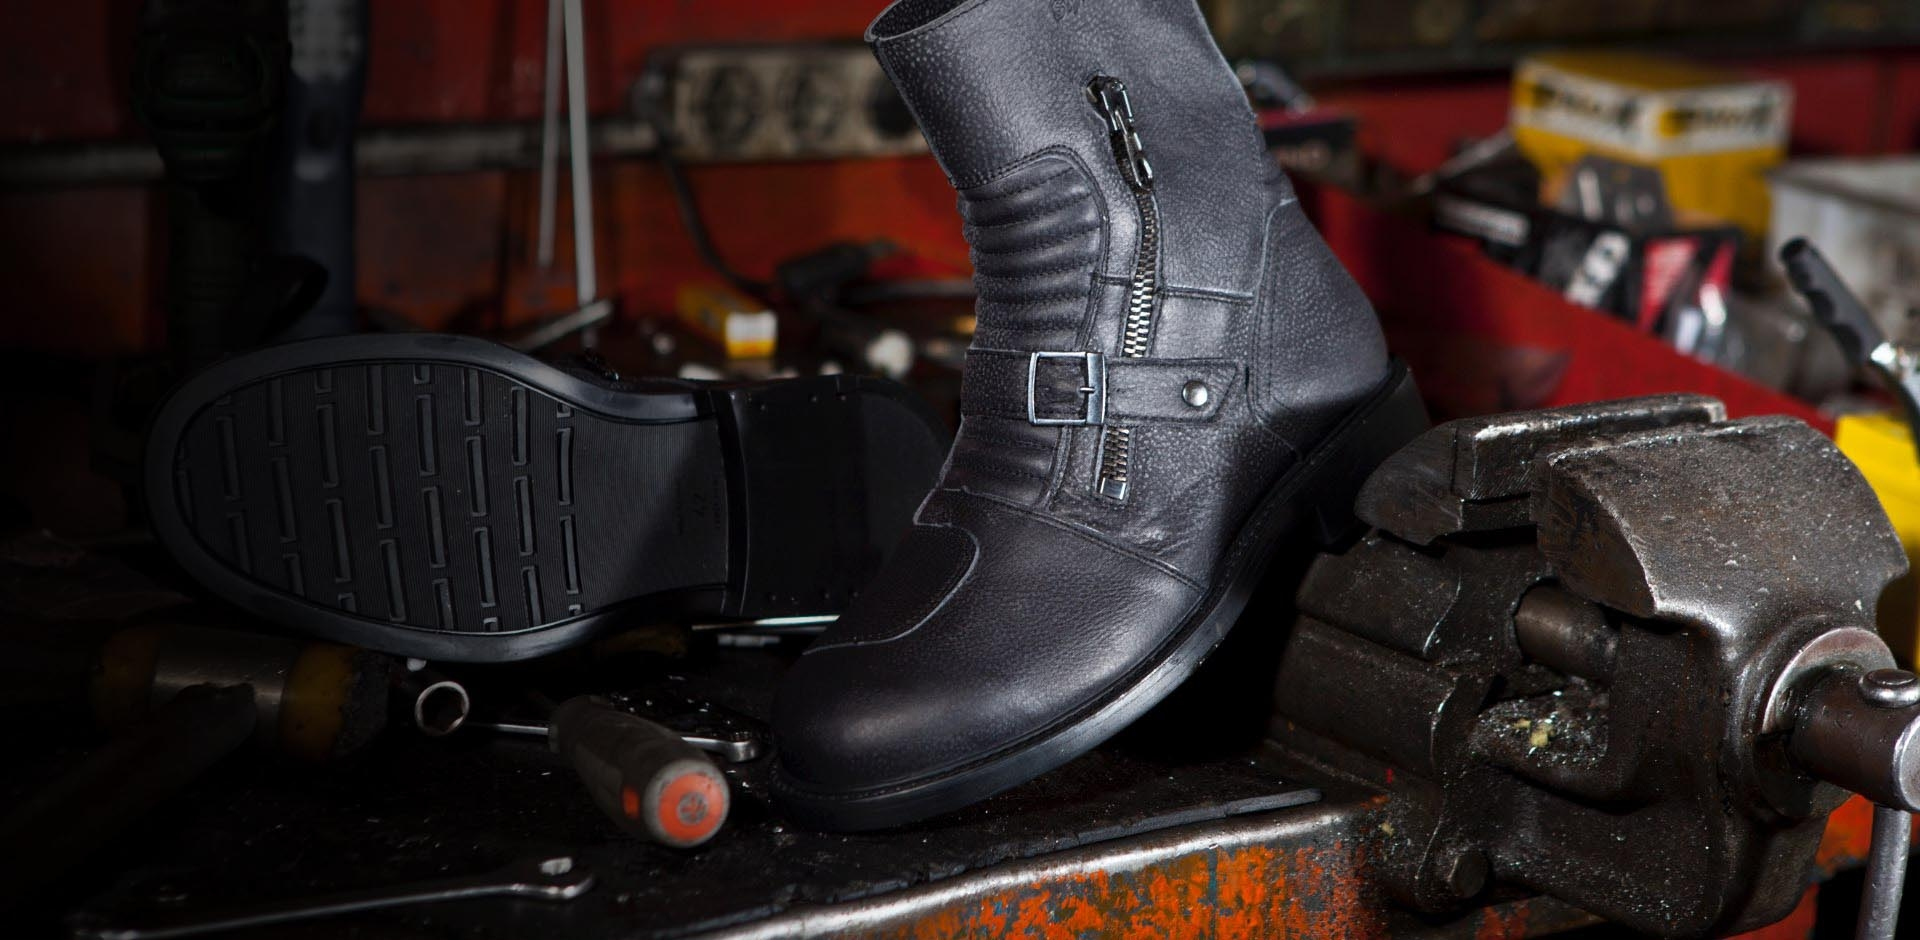 Useful topic classic vintage motorcycle boots like this